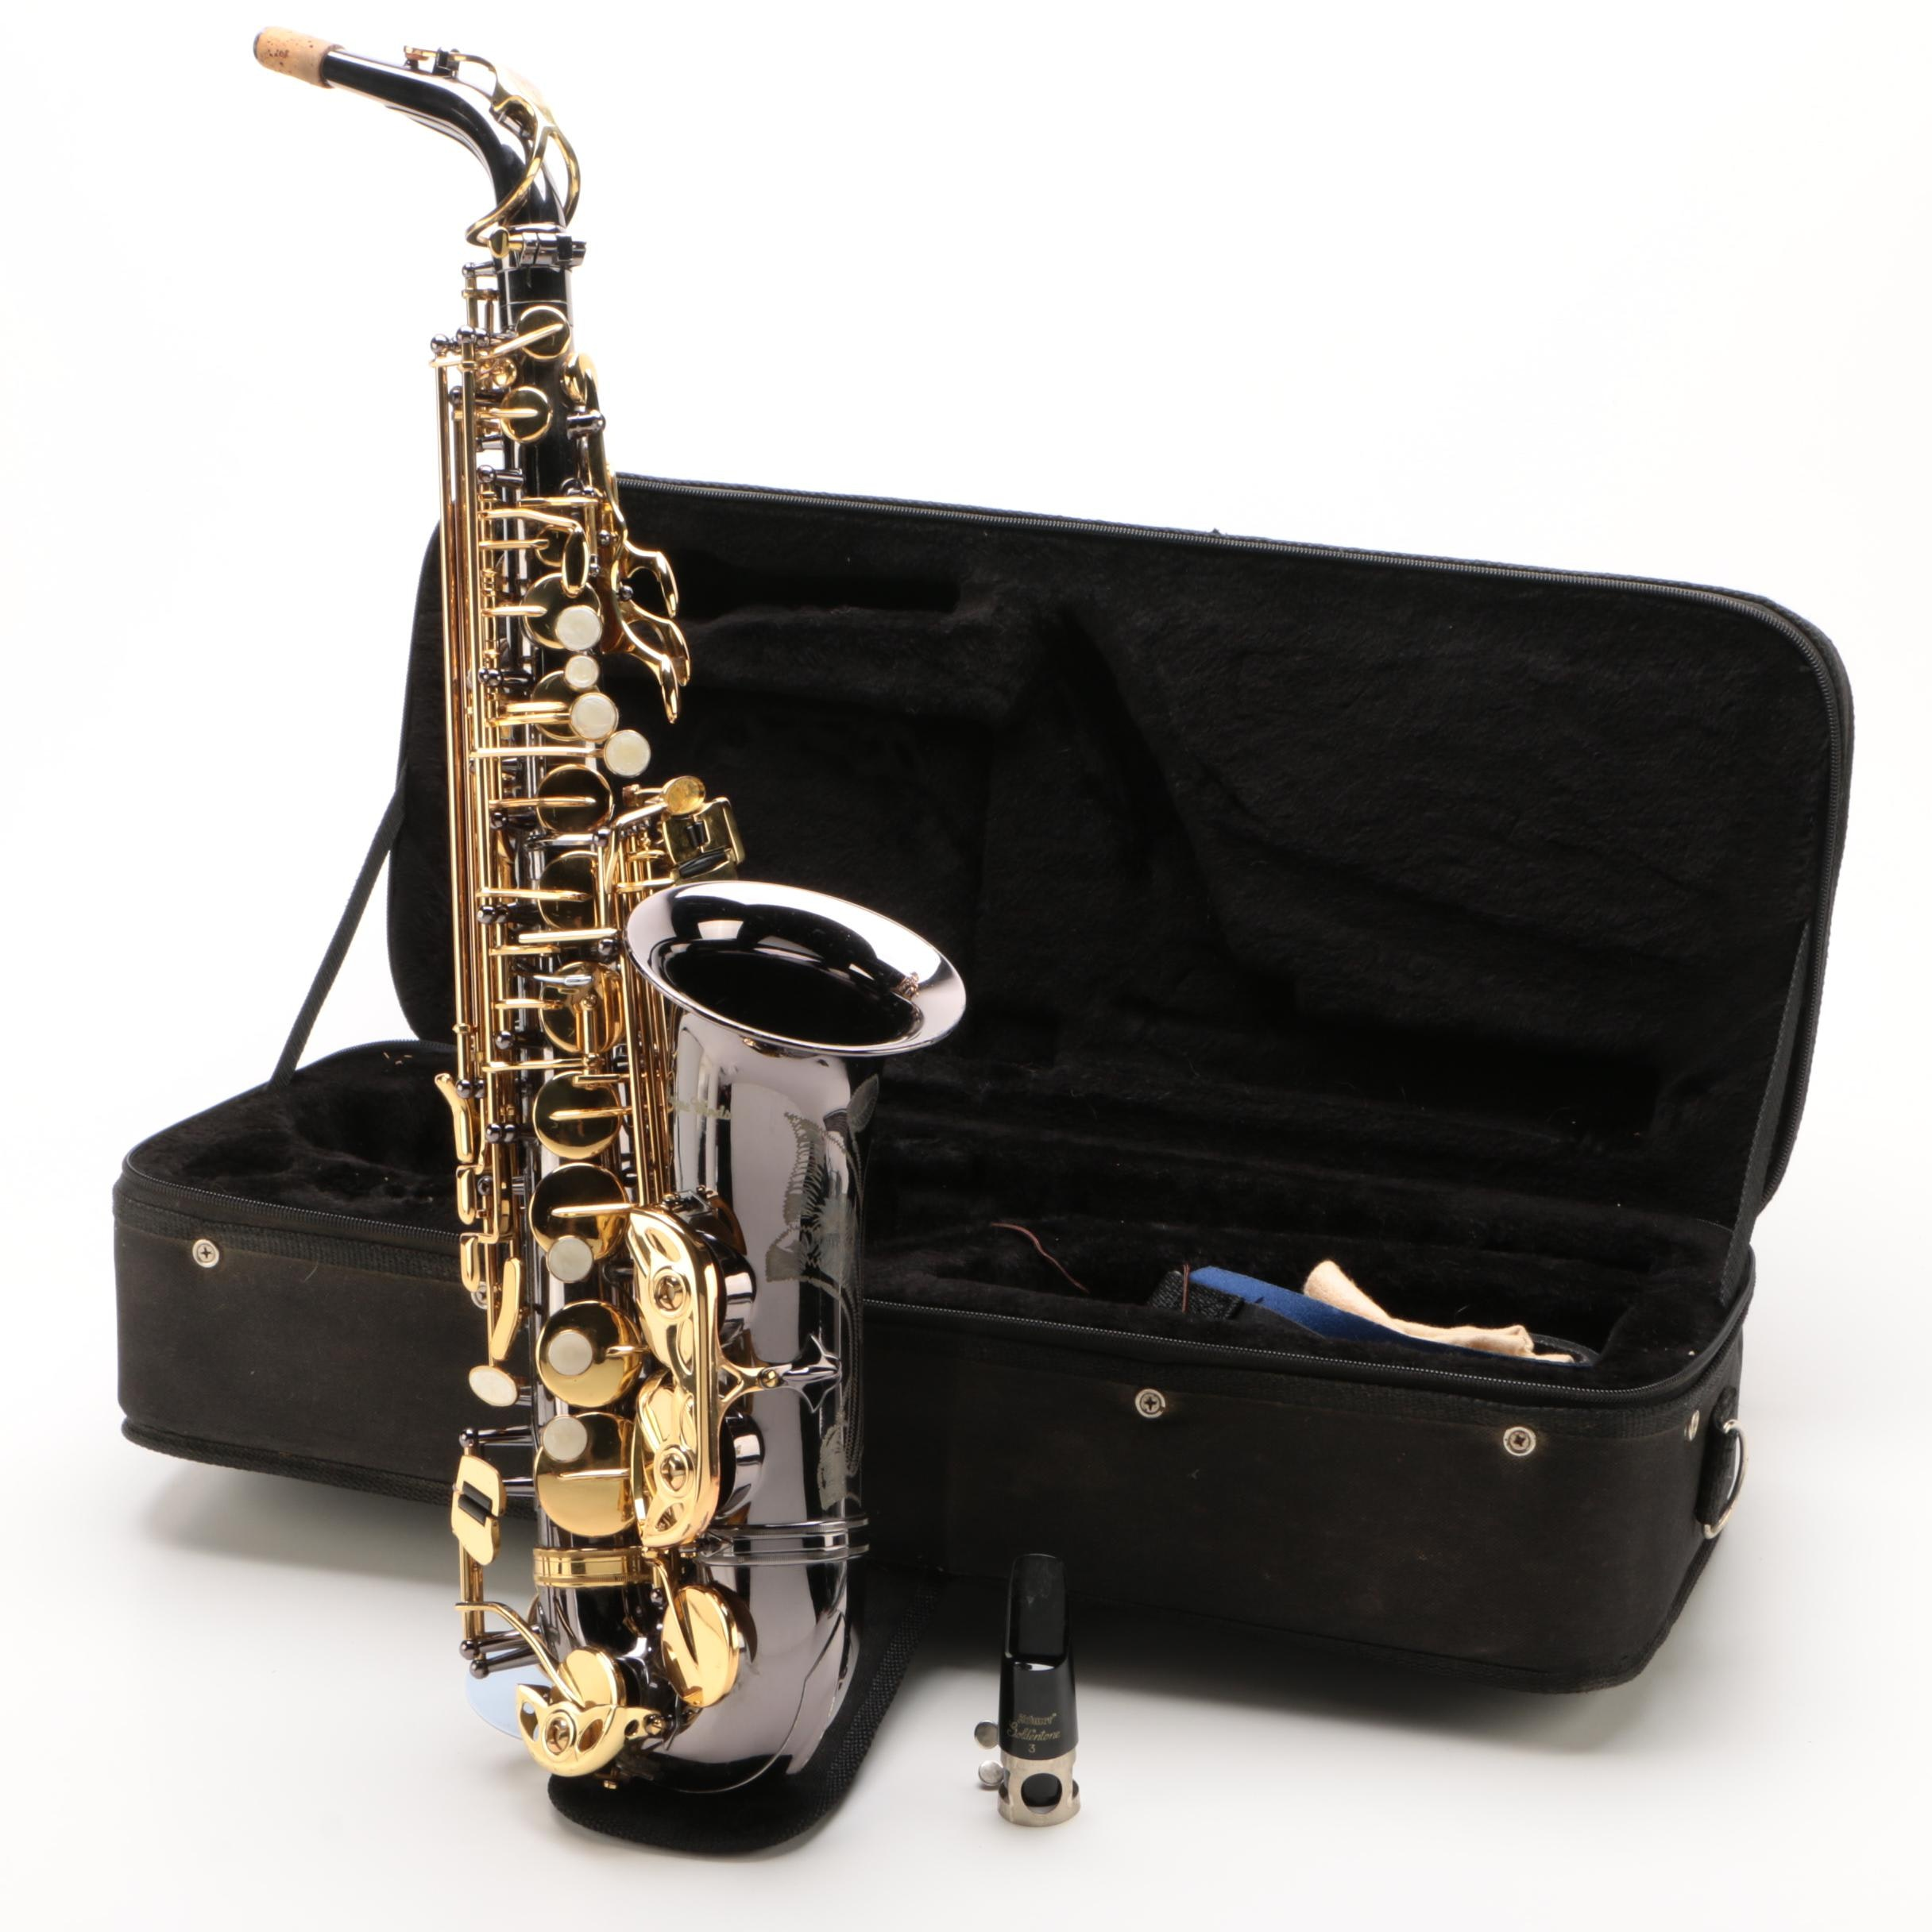 Antigua Winds Alto Saxophone with Case